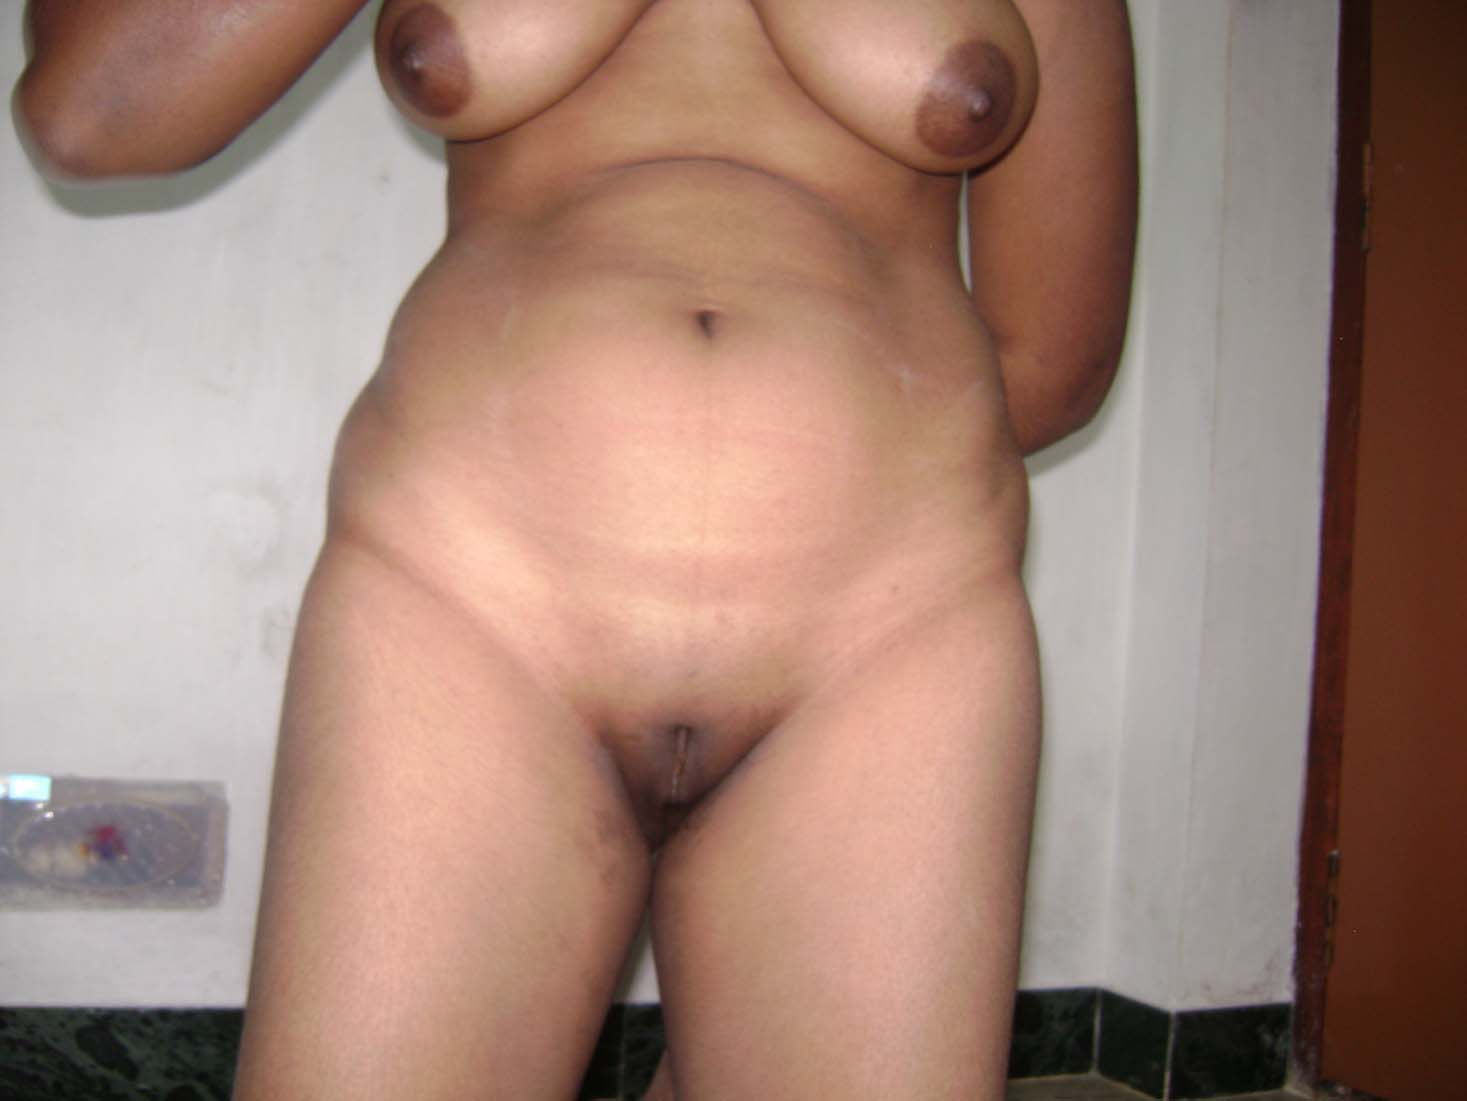 Tamil Dirty Sex Pictures - The Best Tamil Sex Website -2179